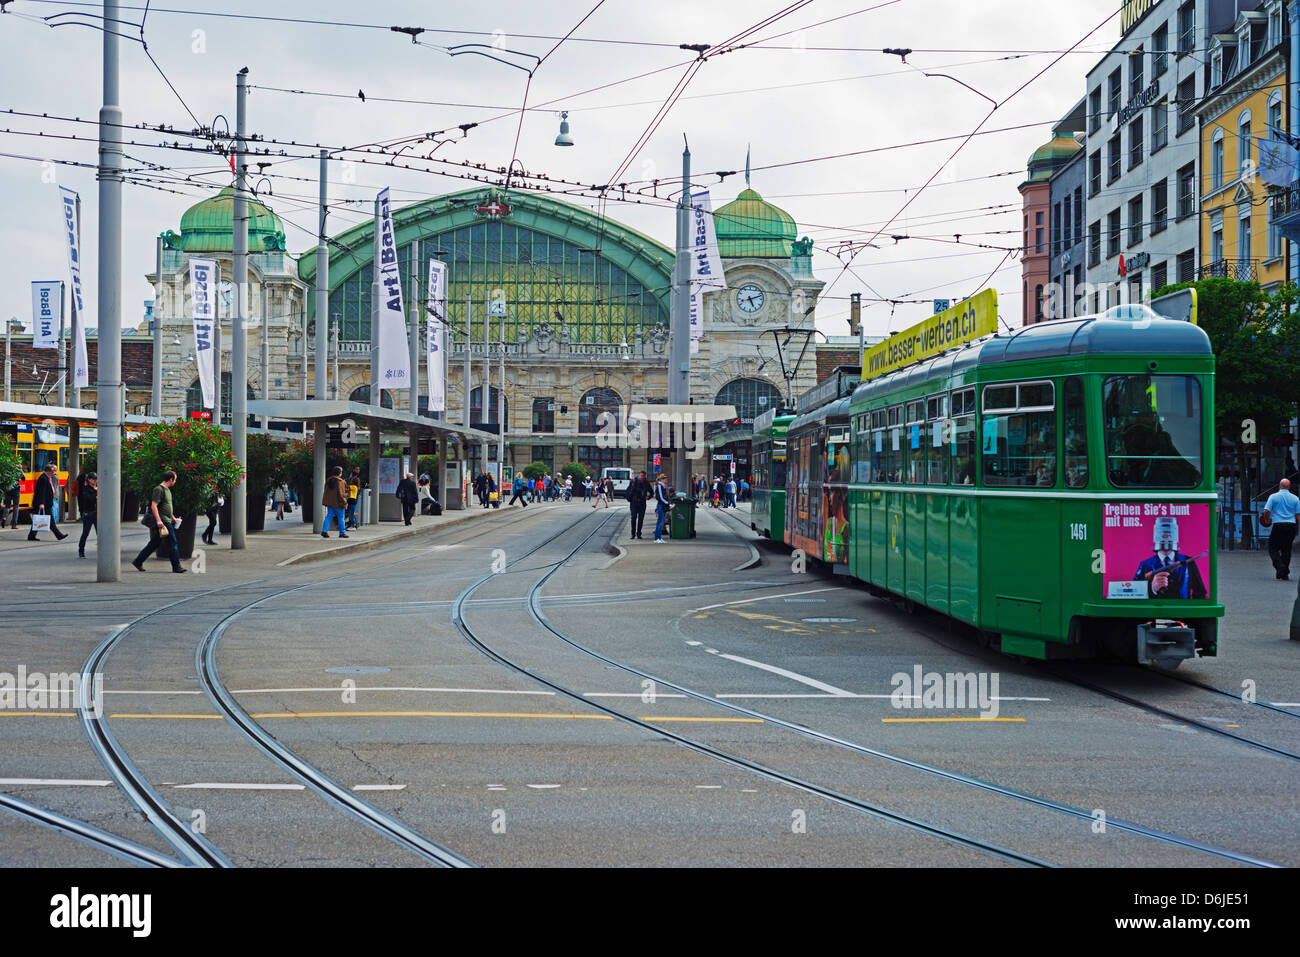 City center trams, Basel, Switzerland, Europe - Stock Image